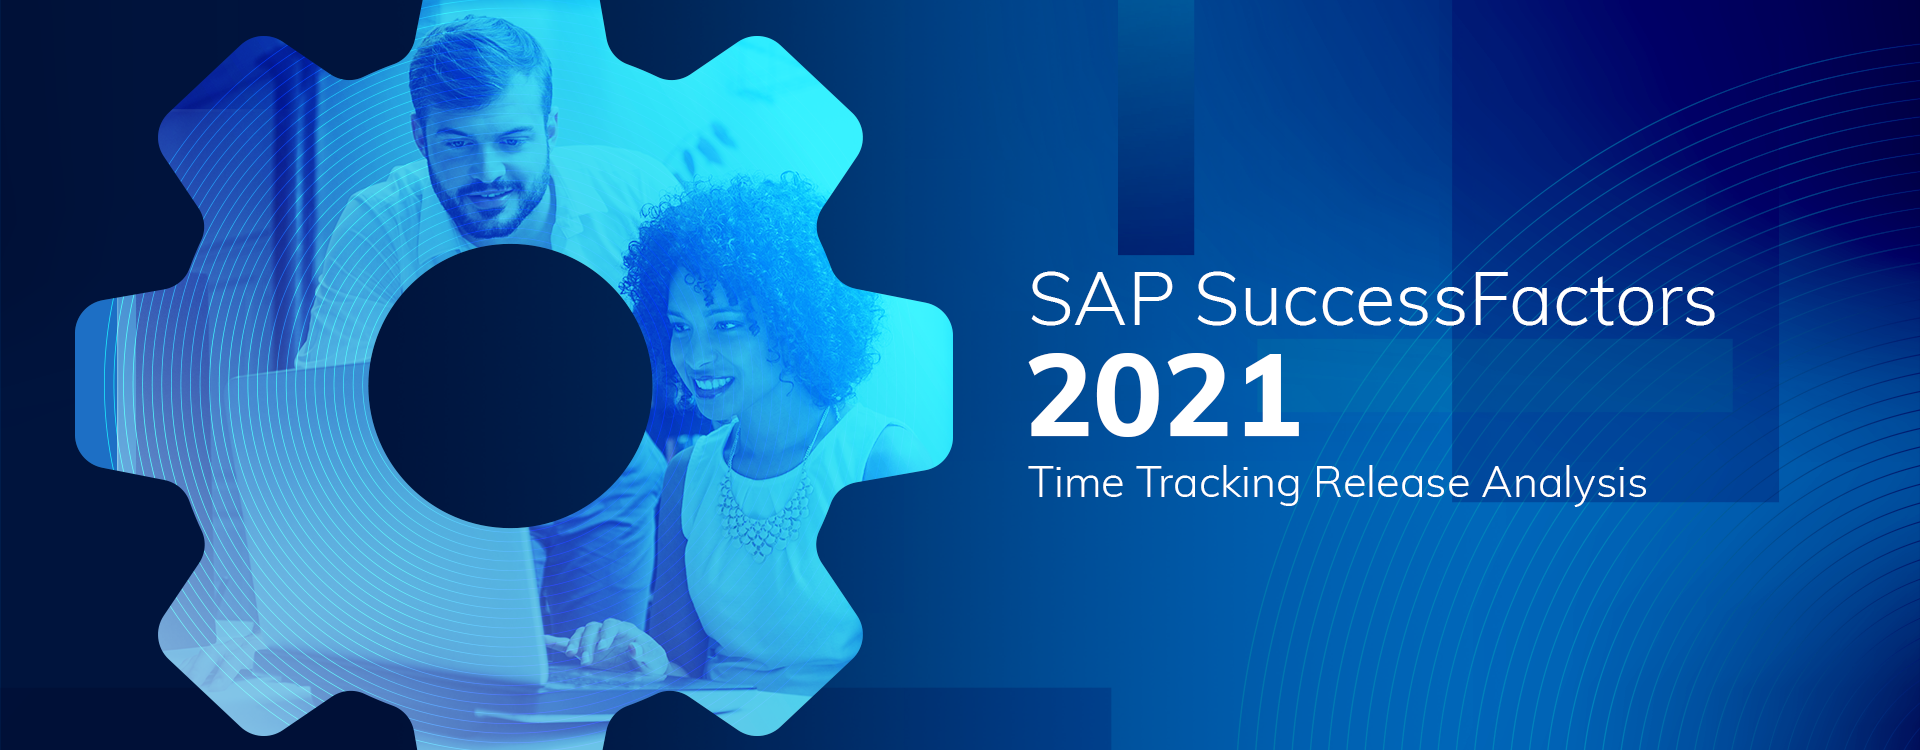 SAP SuccessFactors H1 2021 Time Tracking Release Analysis featured image